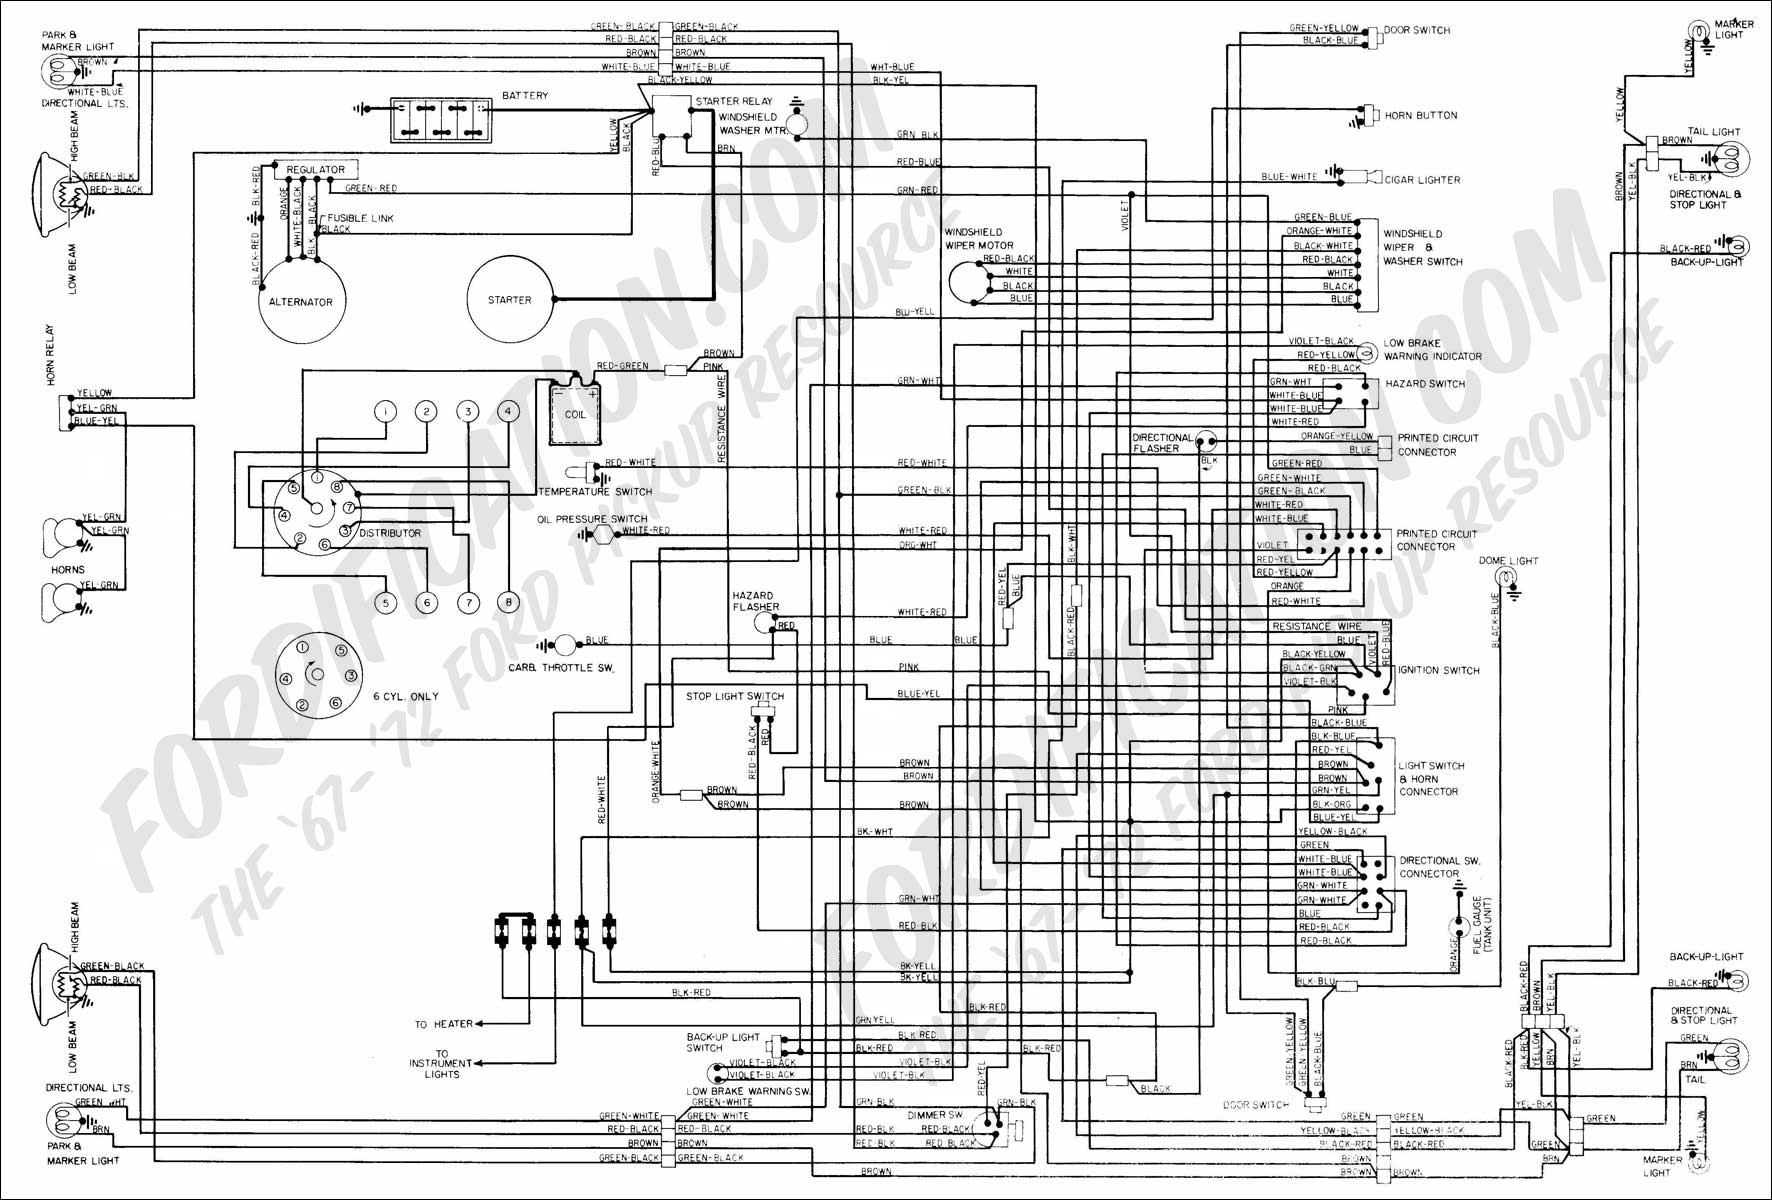 1999 ford f350 wiring diagram detailed schematics diagram rh mrskindsclass  com 1999 f350 radio wiring harness 1999 f350 rear wiring harness